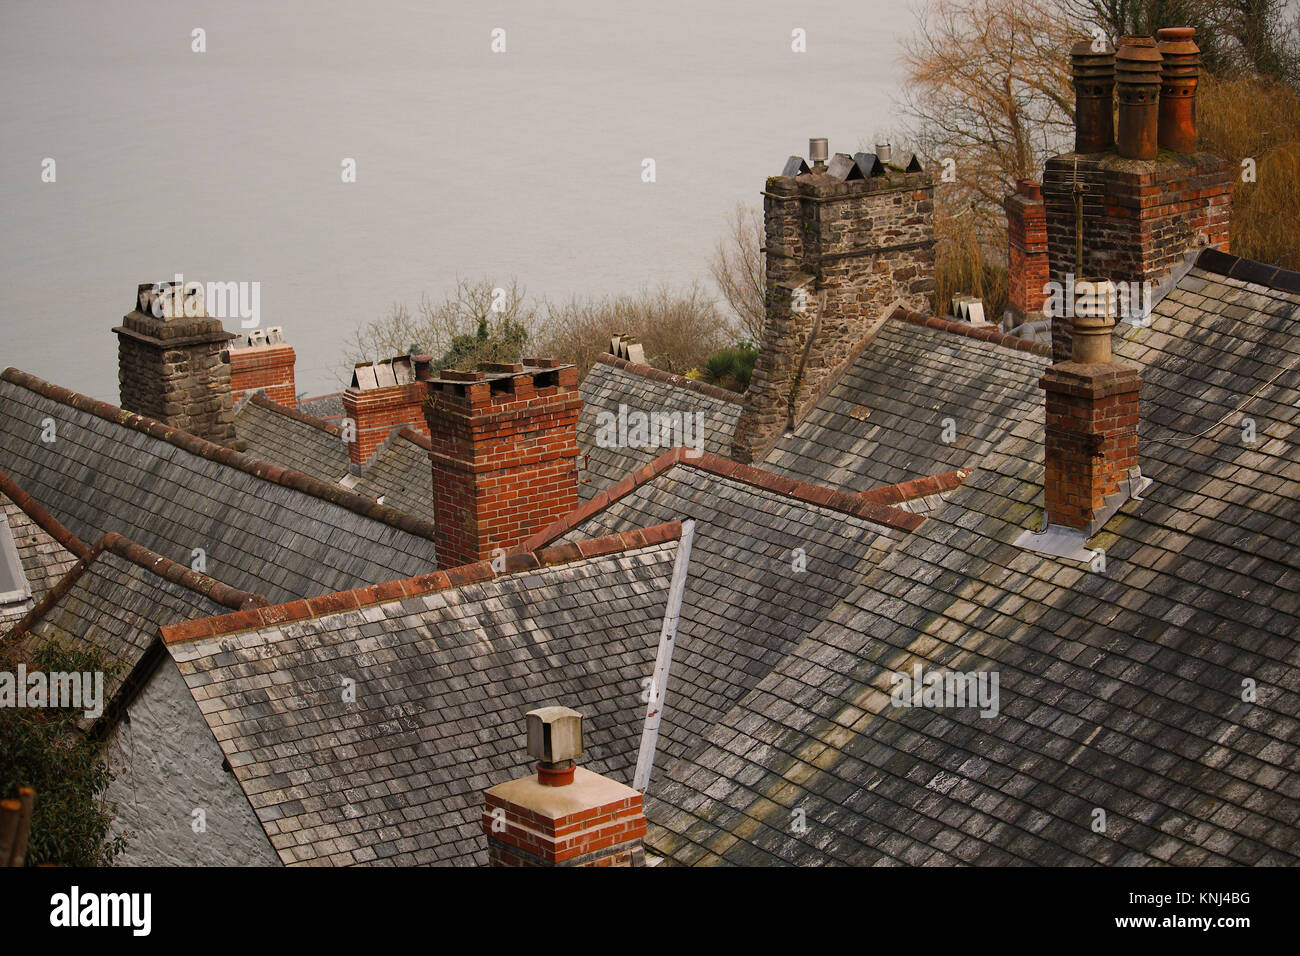 Multiple chimneys on different rooftops together. - Stock Image